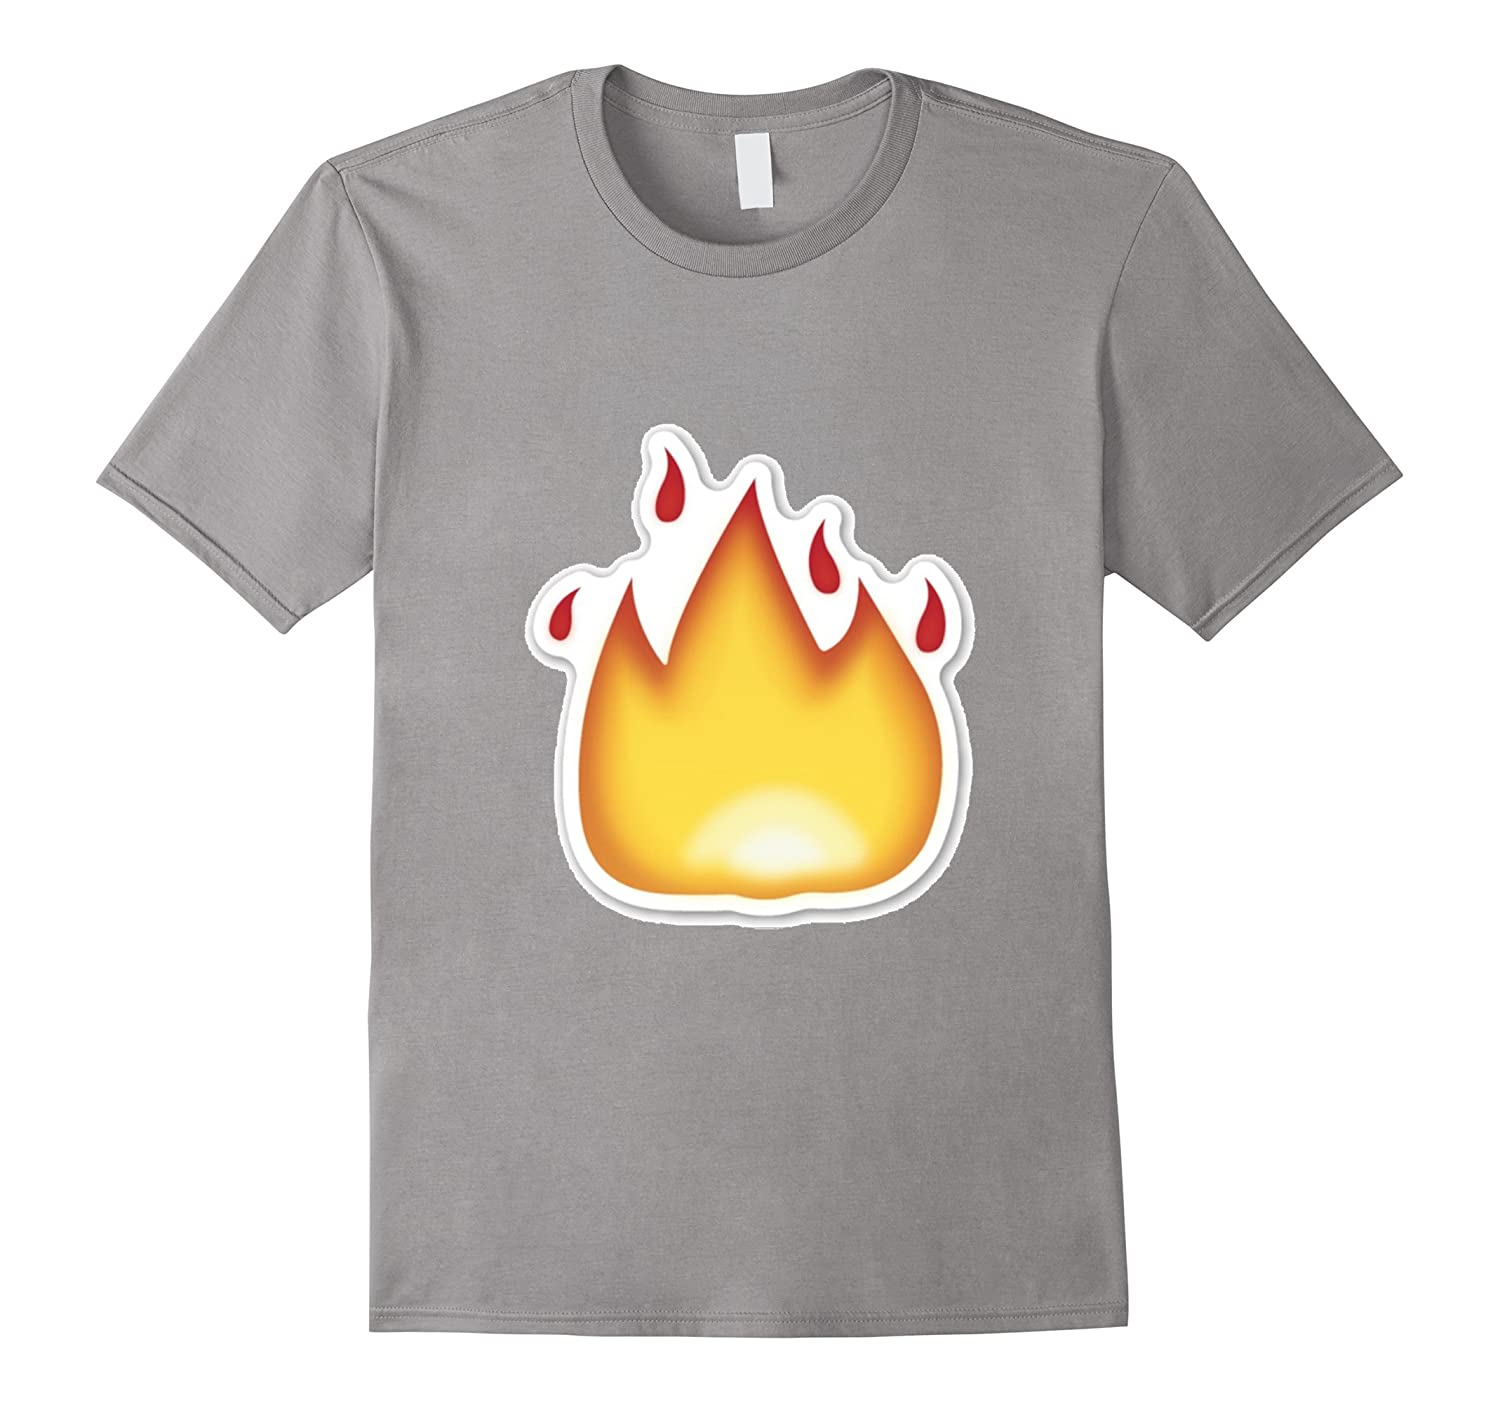 Fire Emoticon T-Shirt It's Lit Burning Hot Flame Flaming-FL